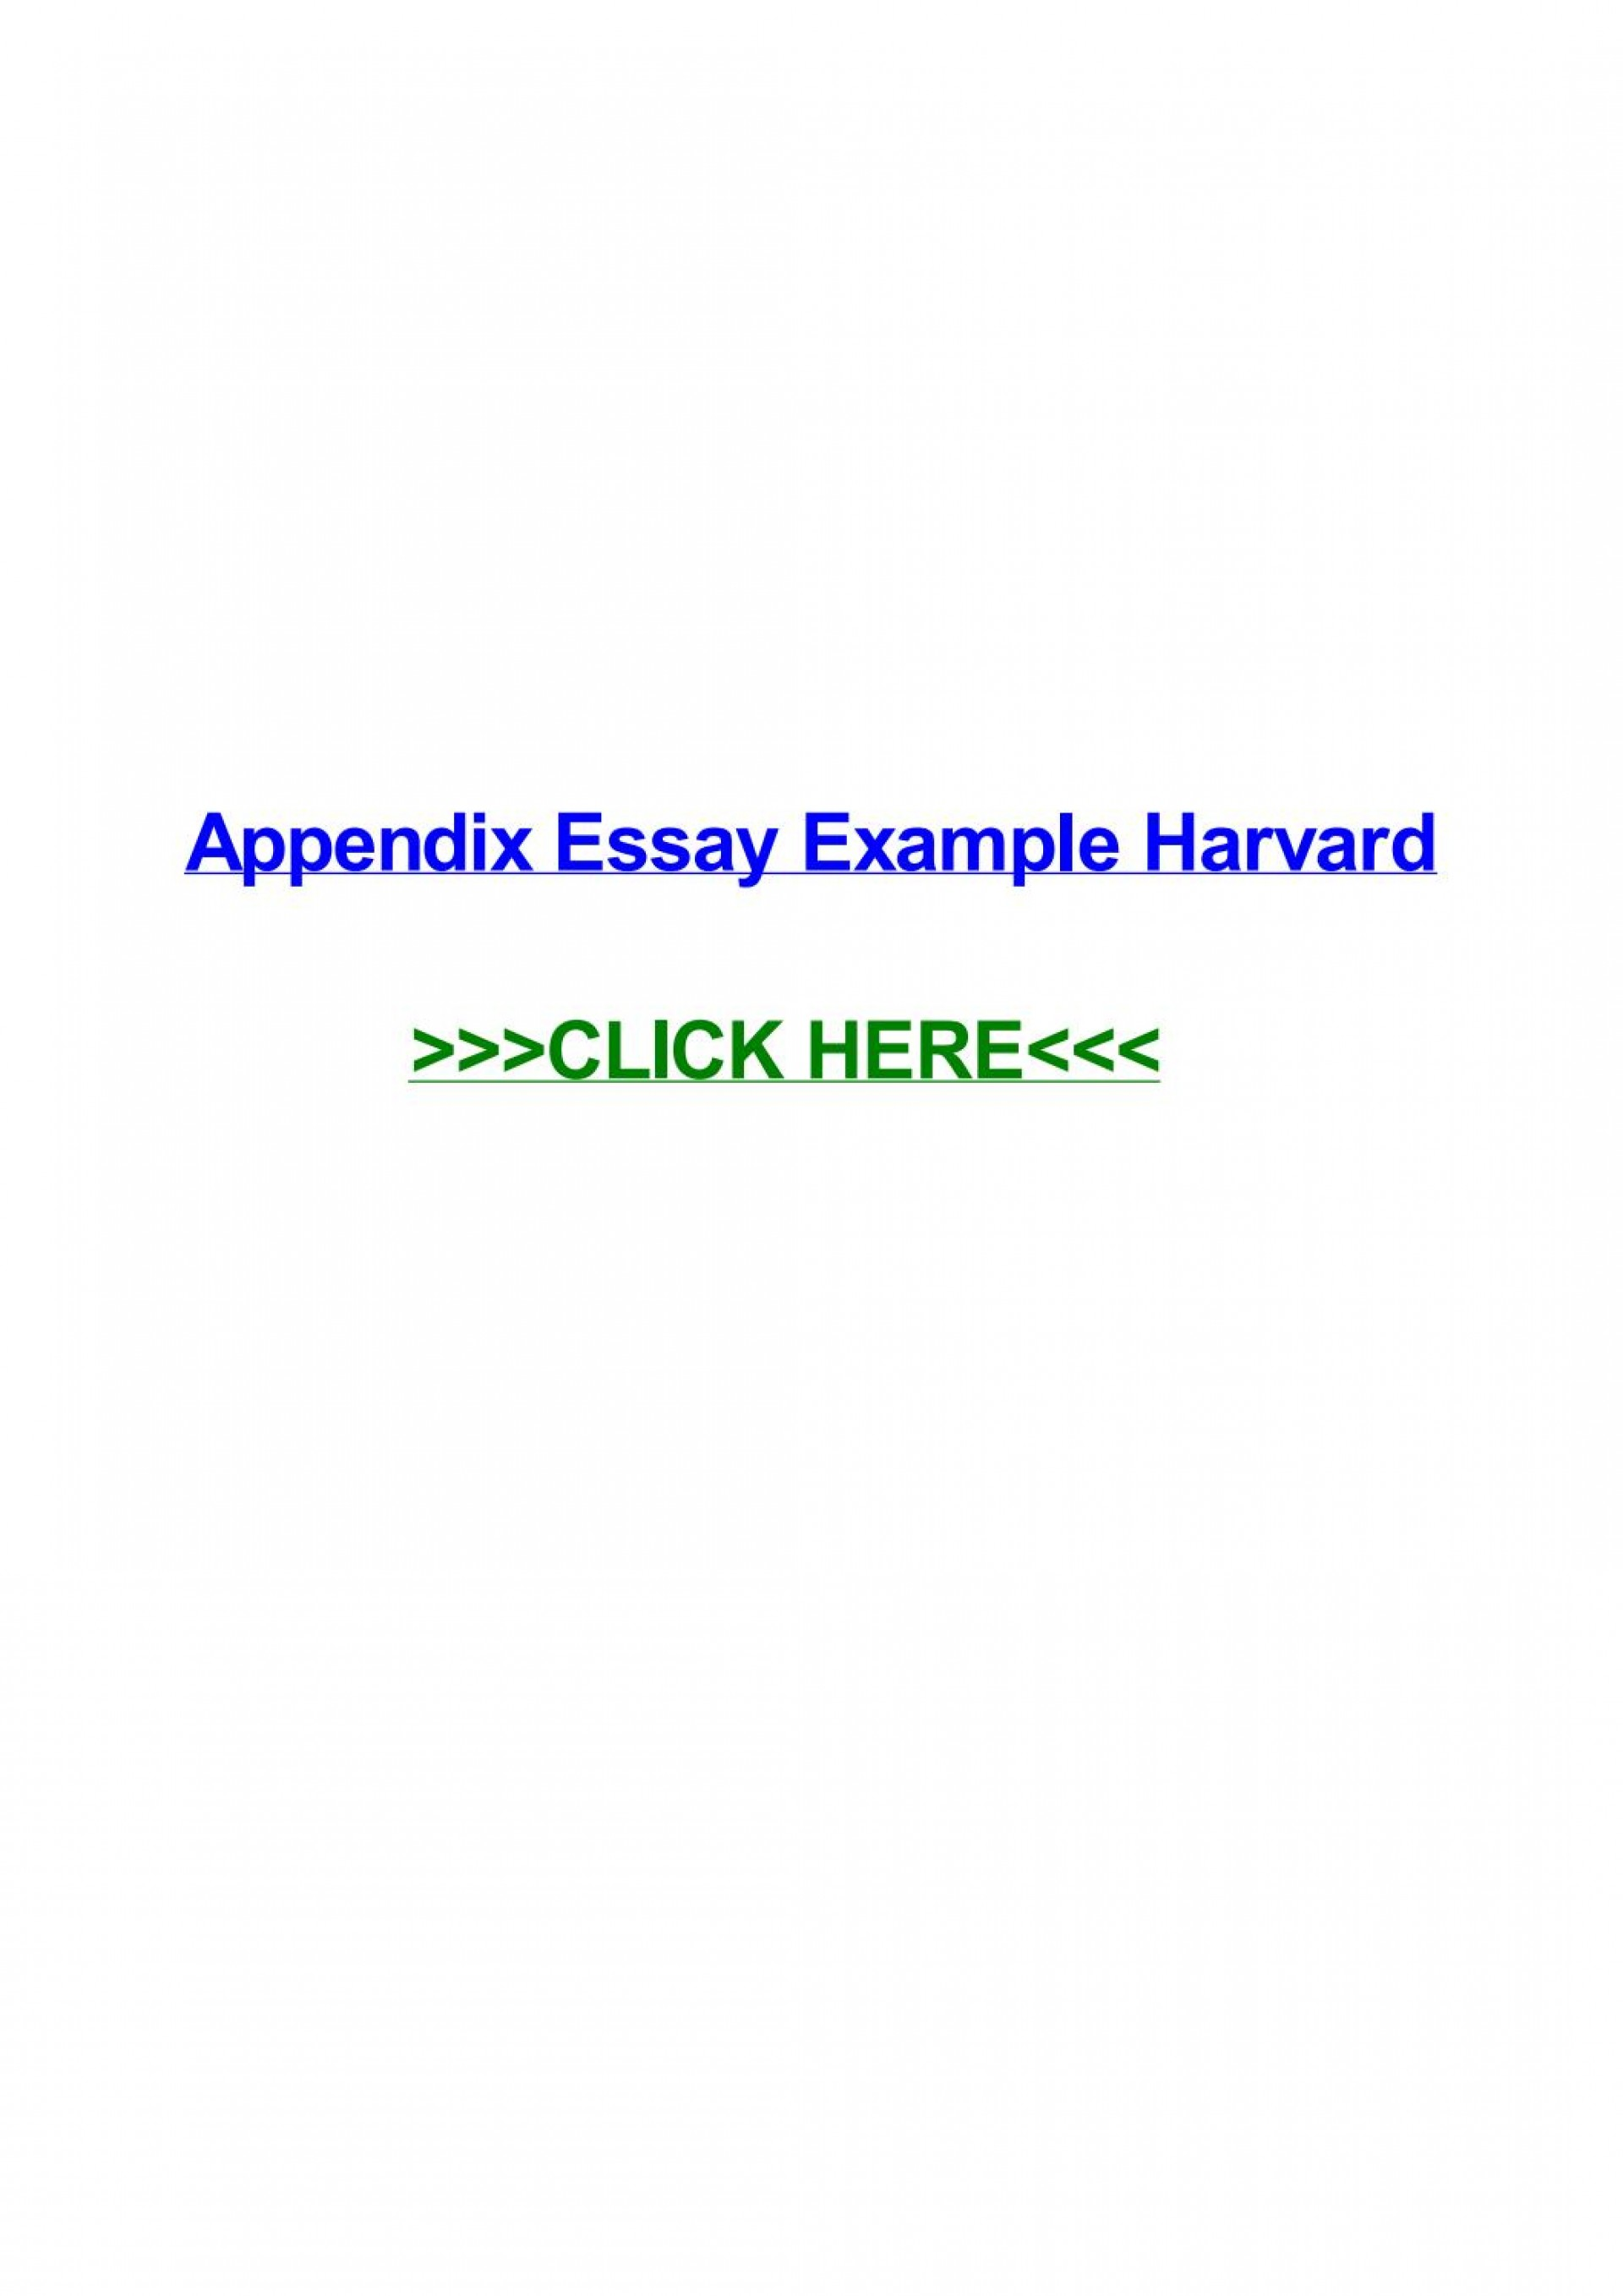 010 Appendices Example In Research Paper Harvard Style Page 1 Excellent 1920